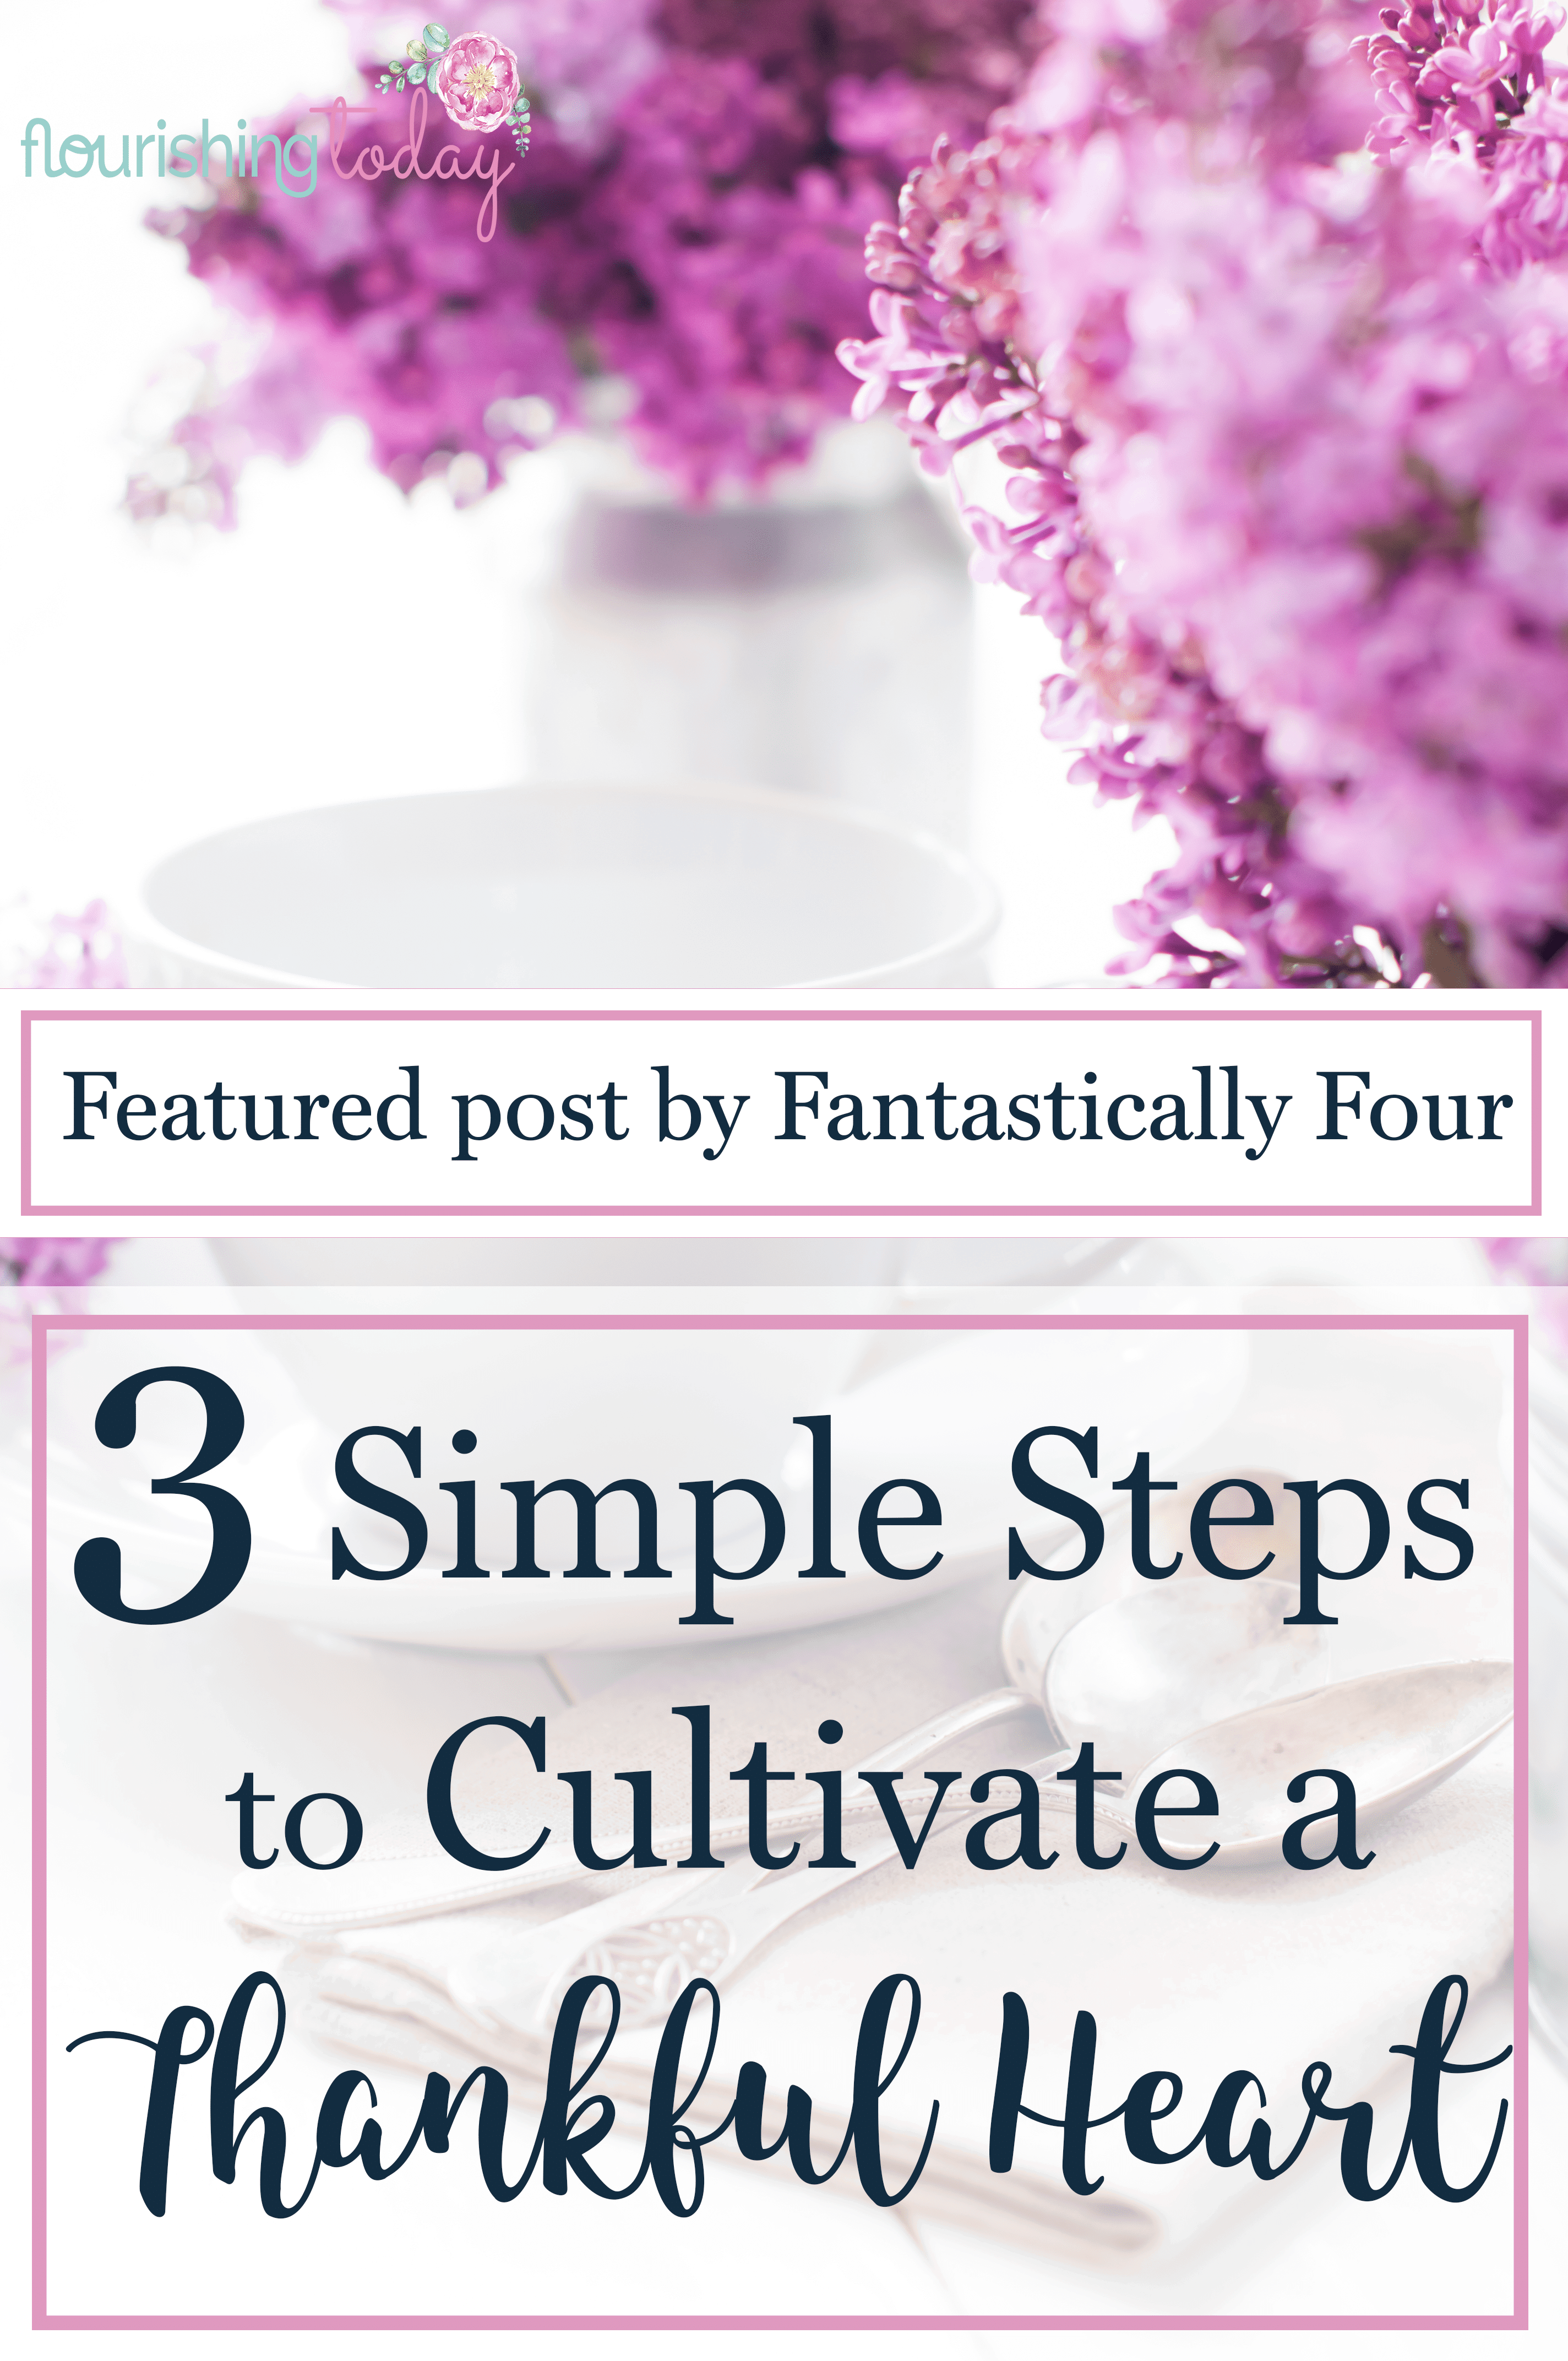 Do you find yourself complaining about certain things in your life? Perhaps you need a little encouragement. Here's 3 steps to cultivate a thankful heart.